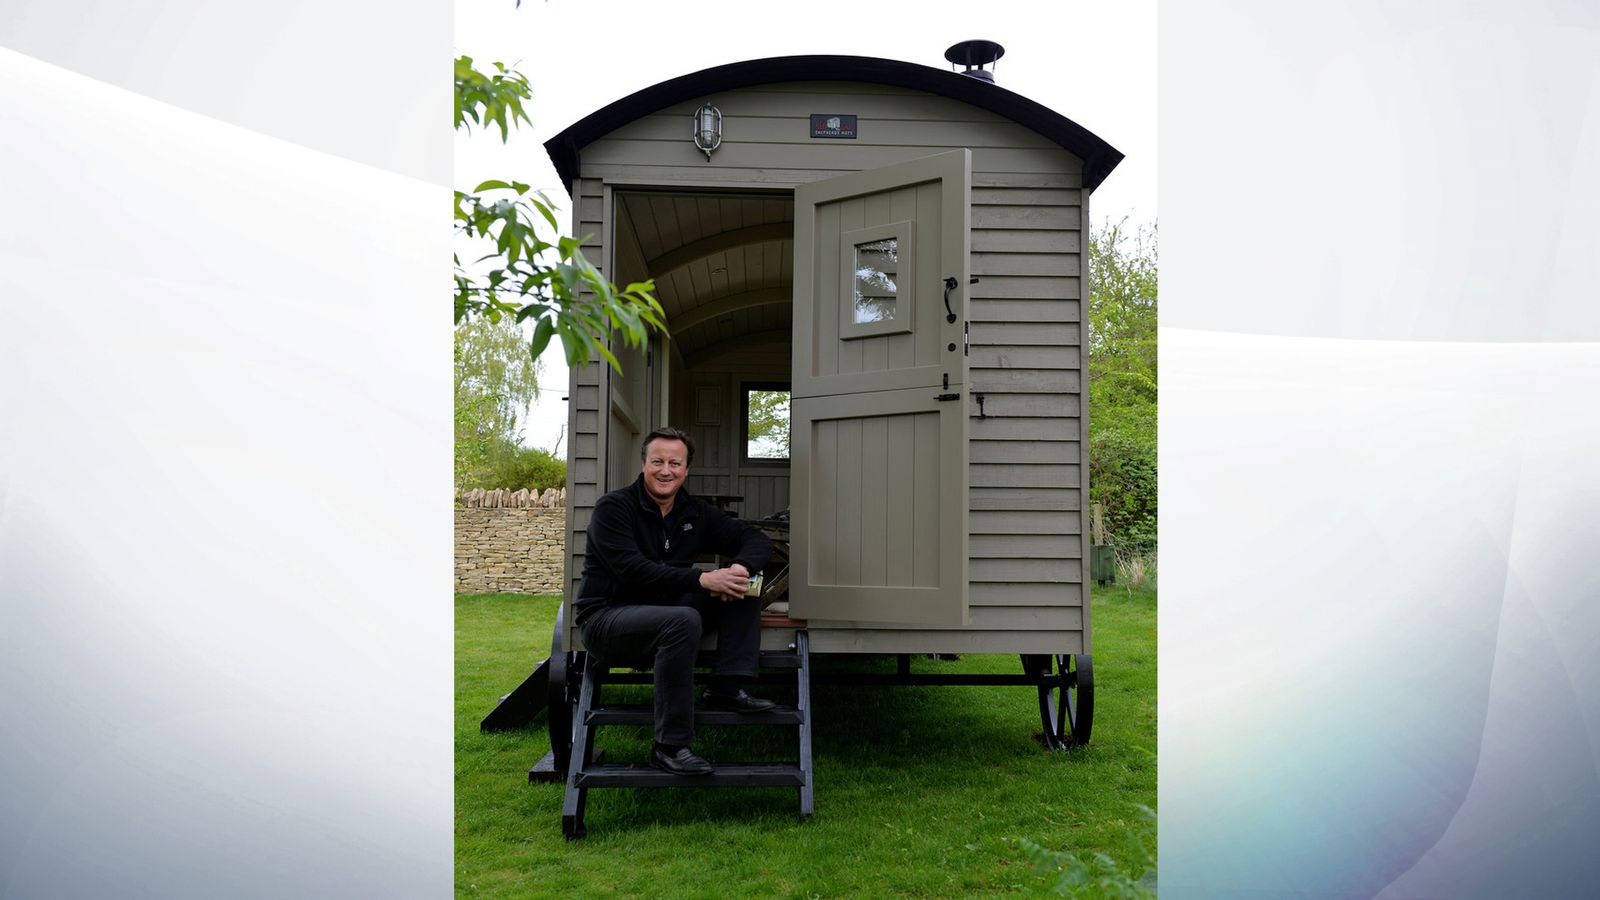 David Cameron Buys Luxury Hut For Writing But His Children